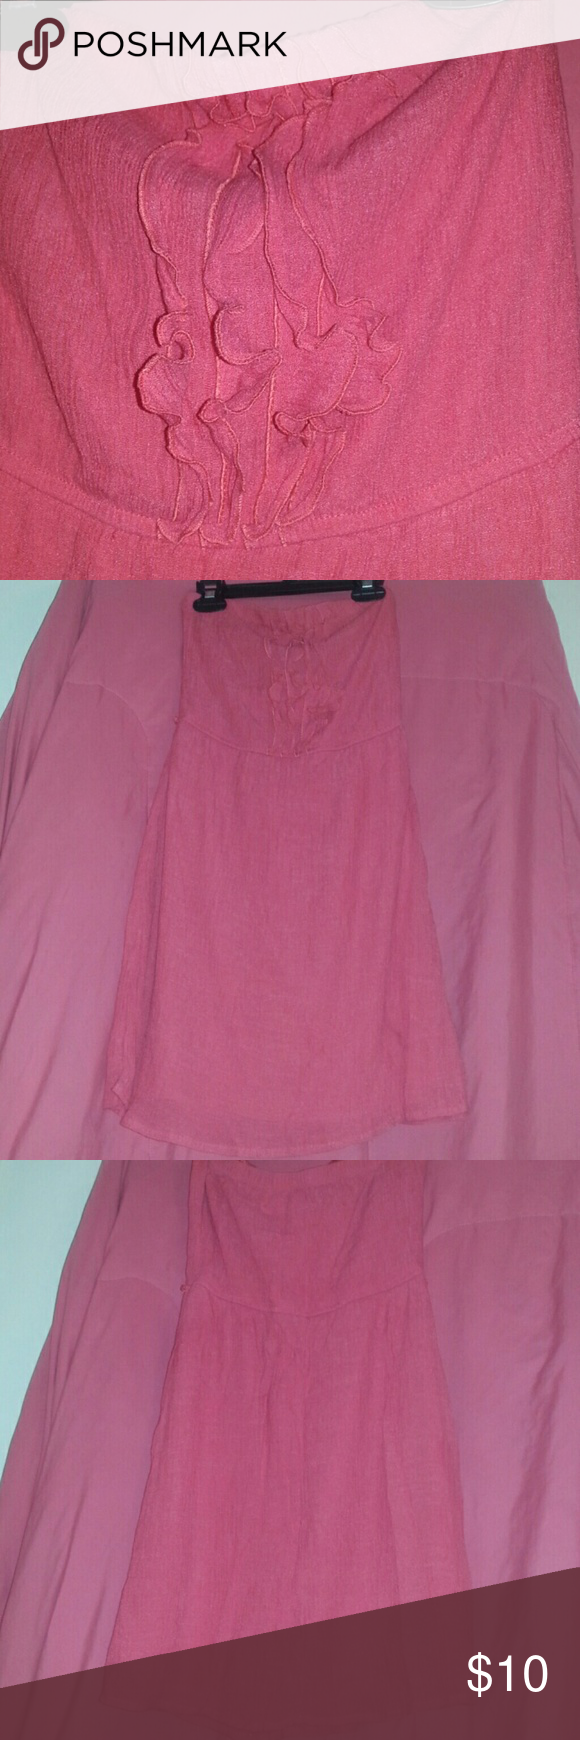 Strapless pink dress Strapless pink dress, runs small, never been used just hand washed, does not need a slip, no issues with the dress accidentally in love Dresses Strapless